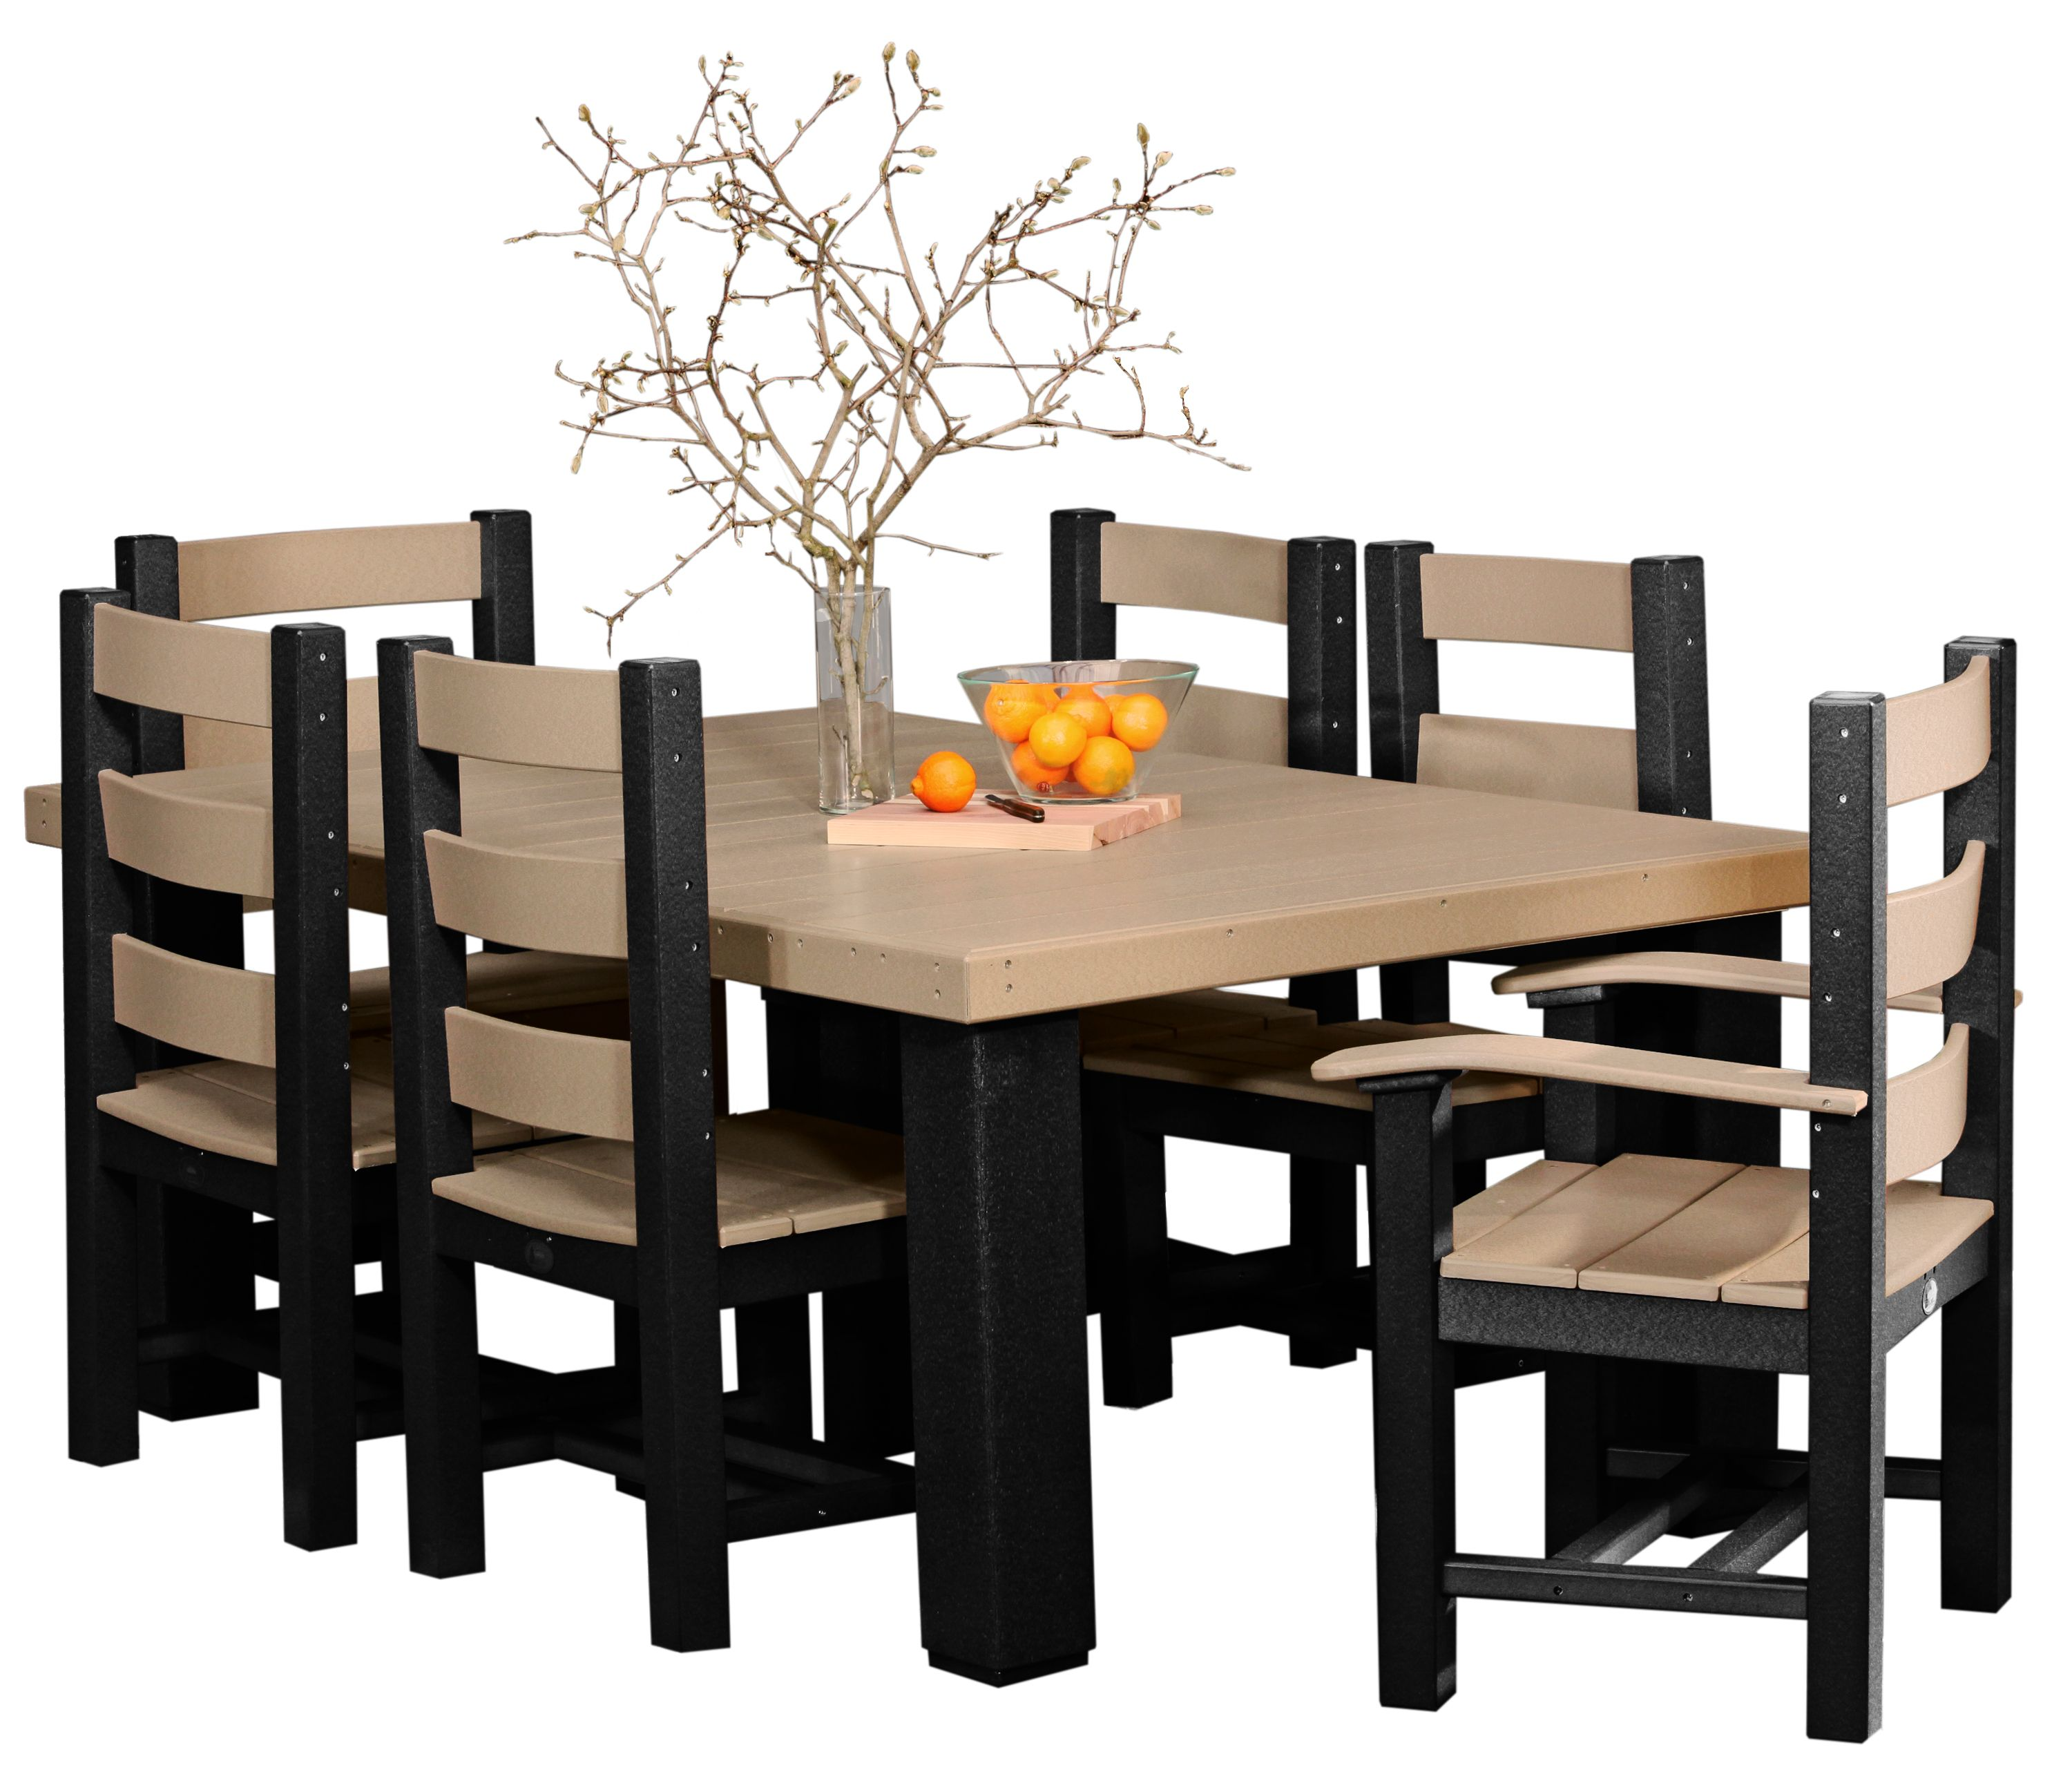 Attractive Black Amish Kids Table And Chair Set | Tables U0026 Chairs